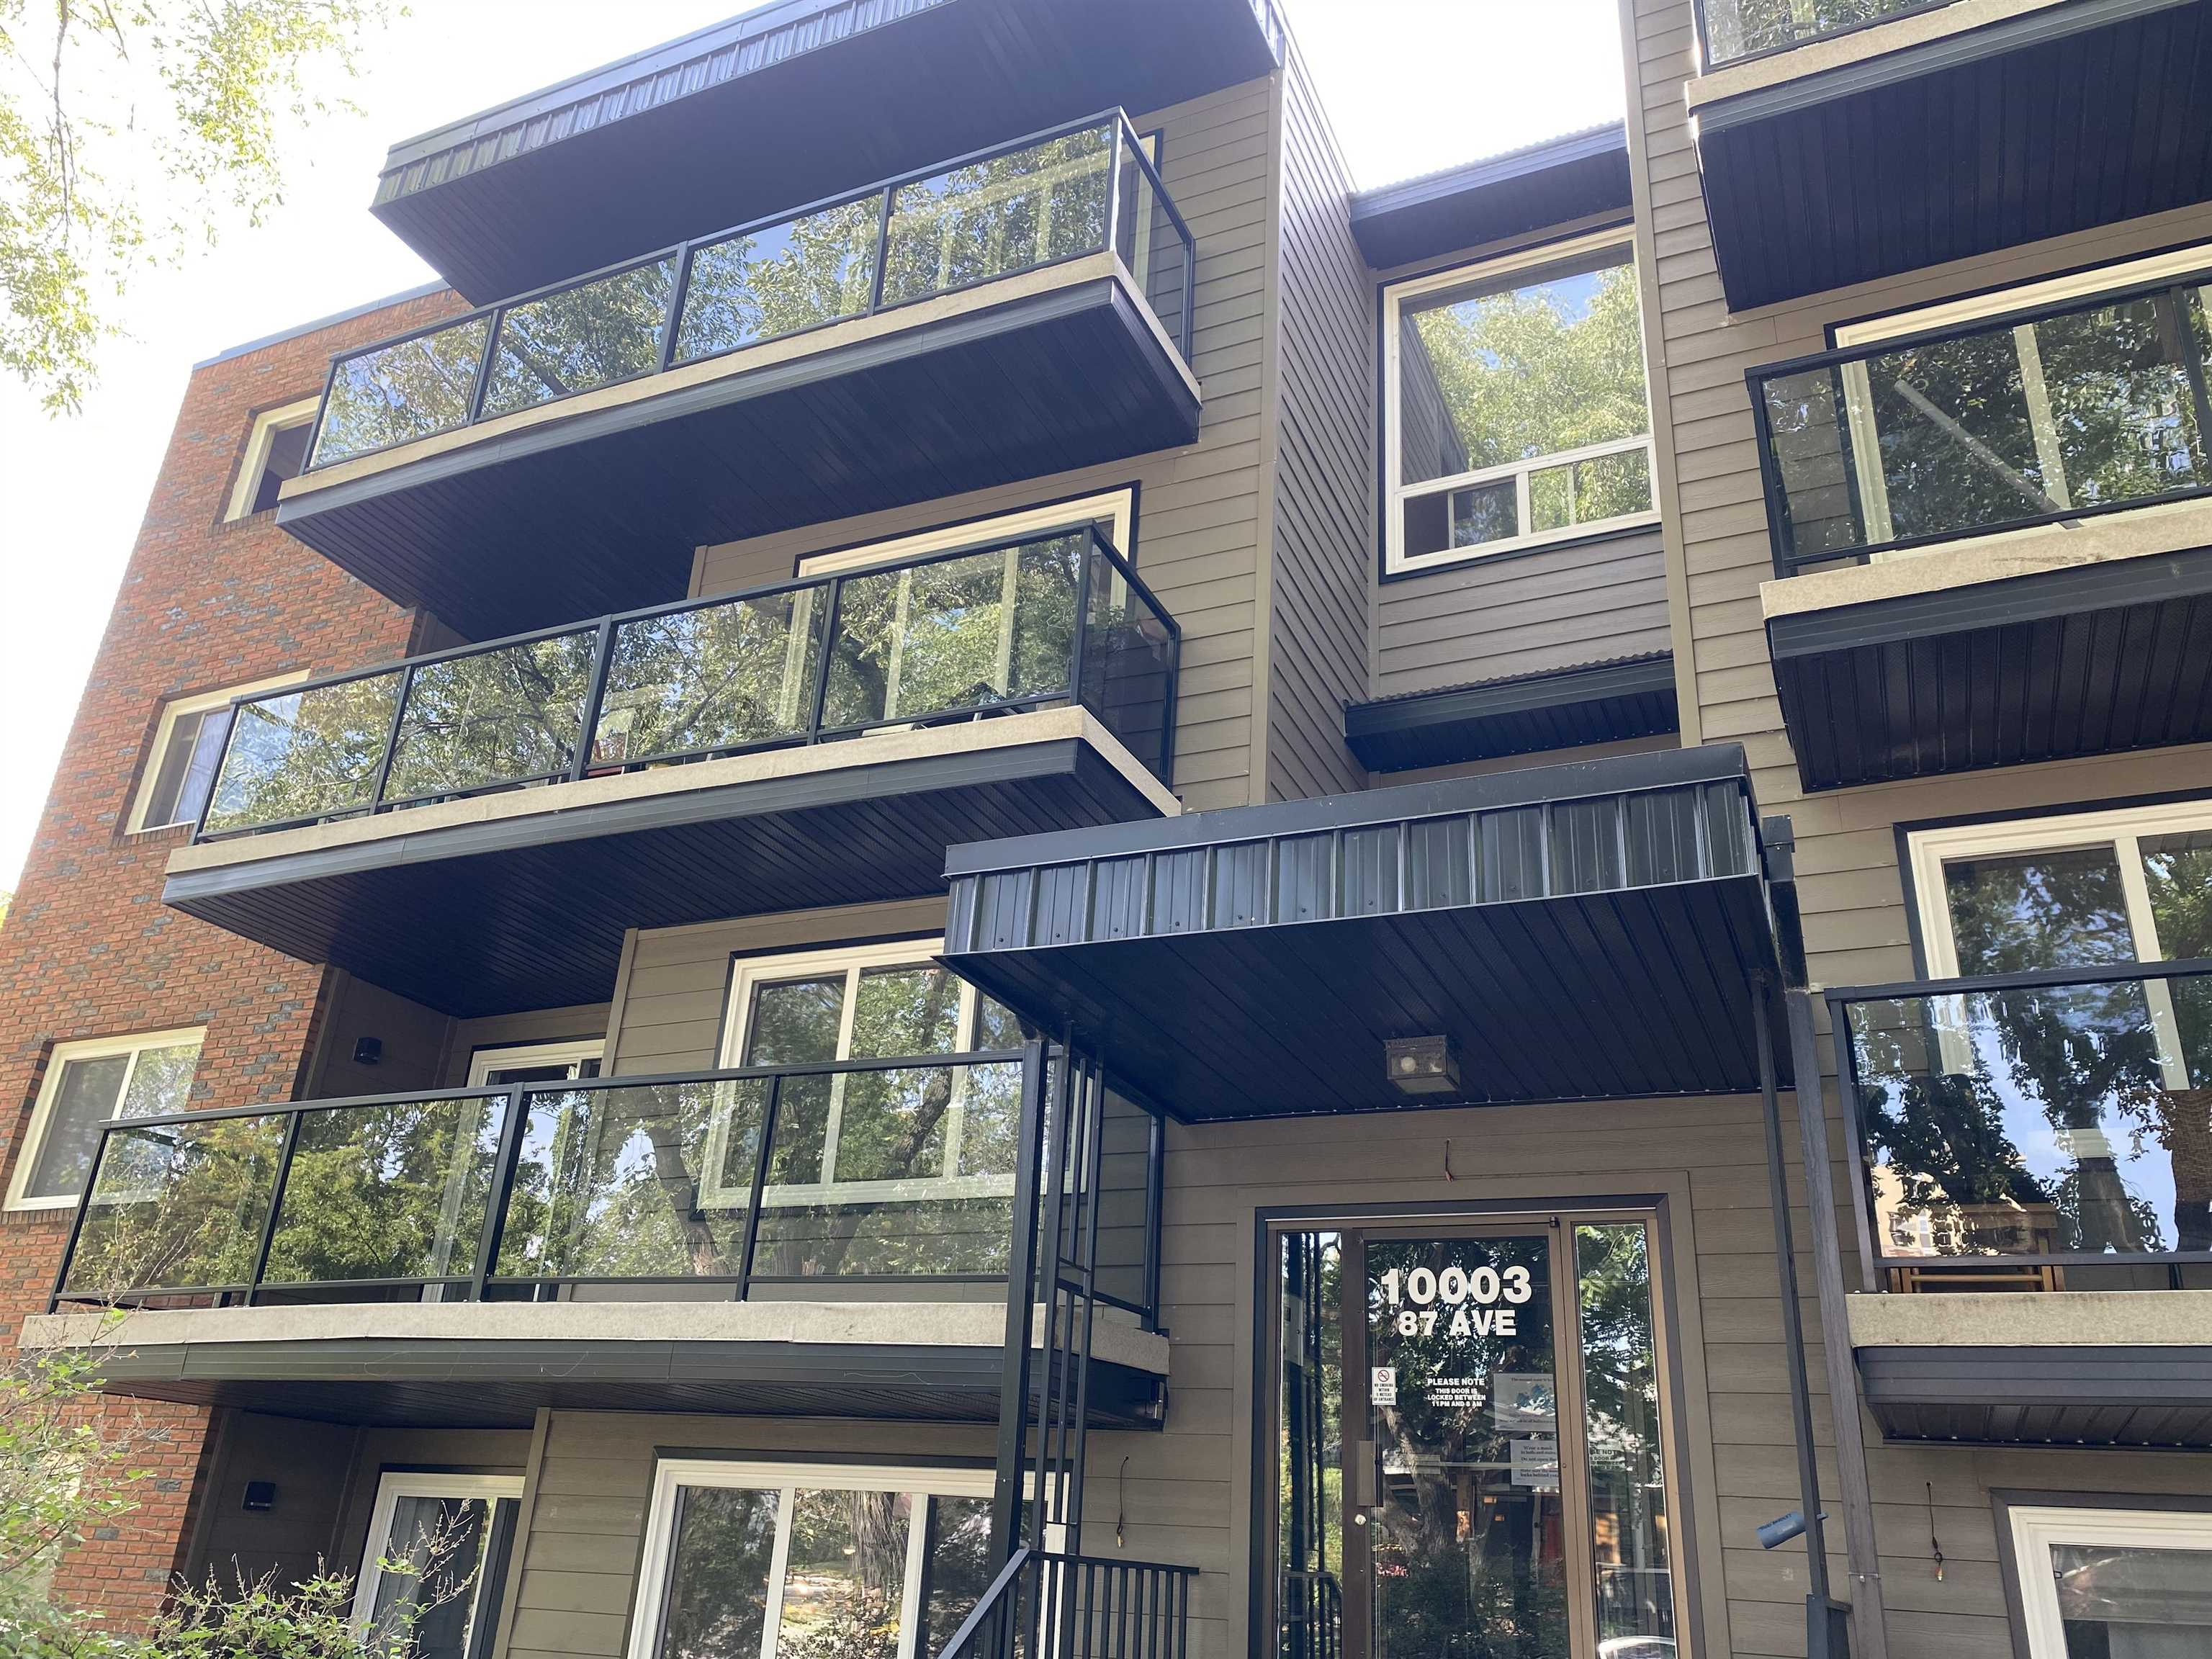 Located in the heart of old Strathcona! 2 bedroom condo in Andrea Manor. Large patio, parking stall assigned, lots of windows for natural light. Walking distance to park, elementary and popular farmers market.